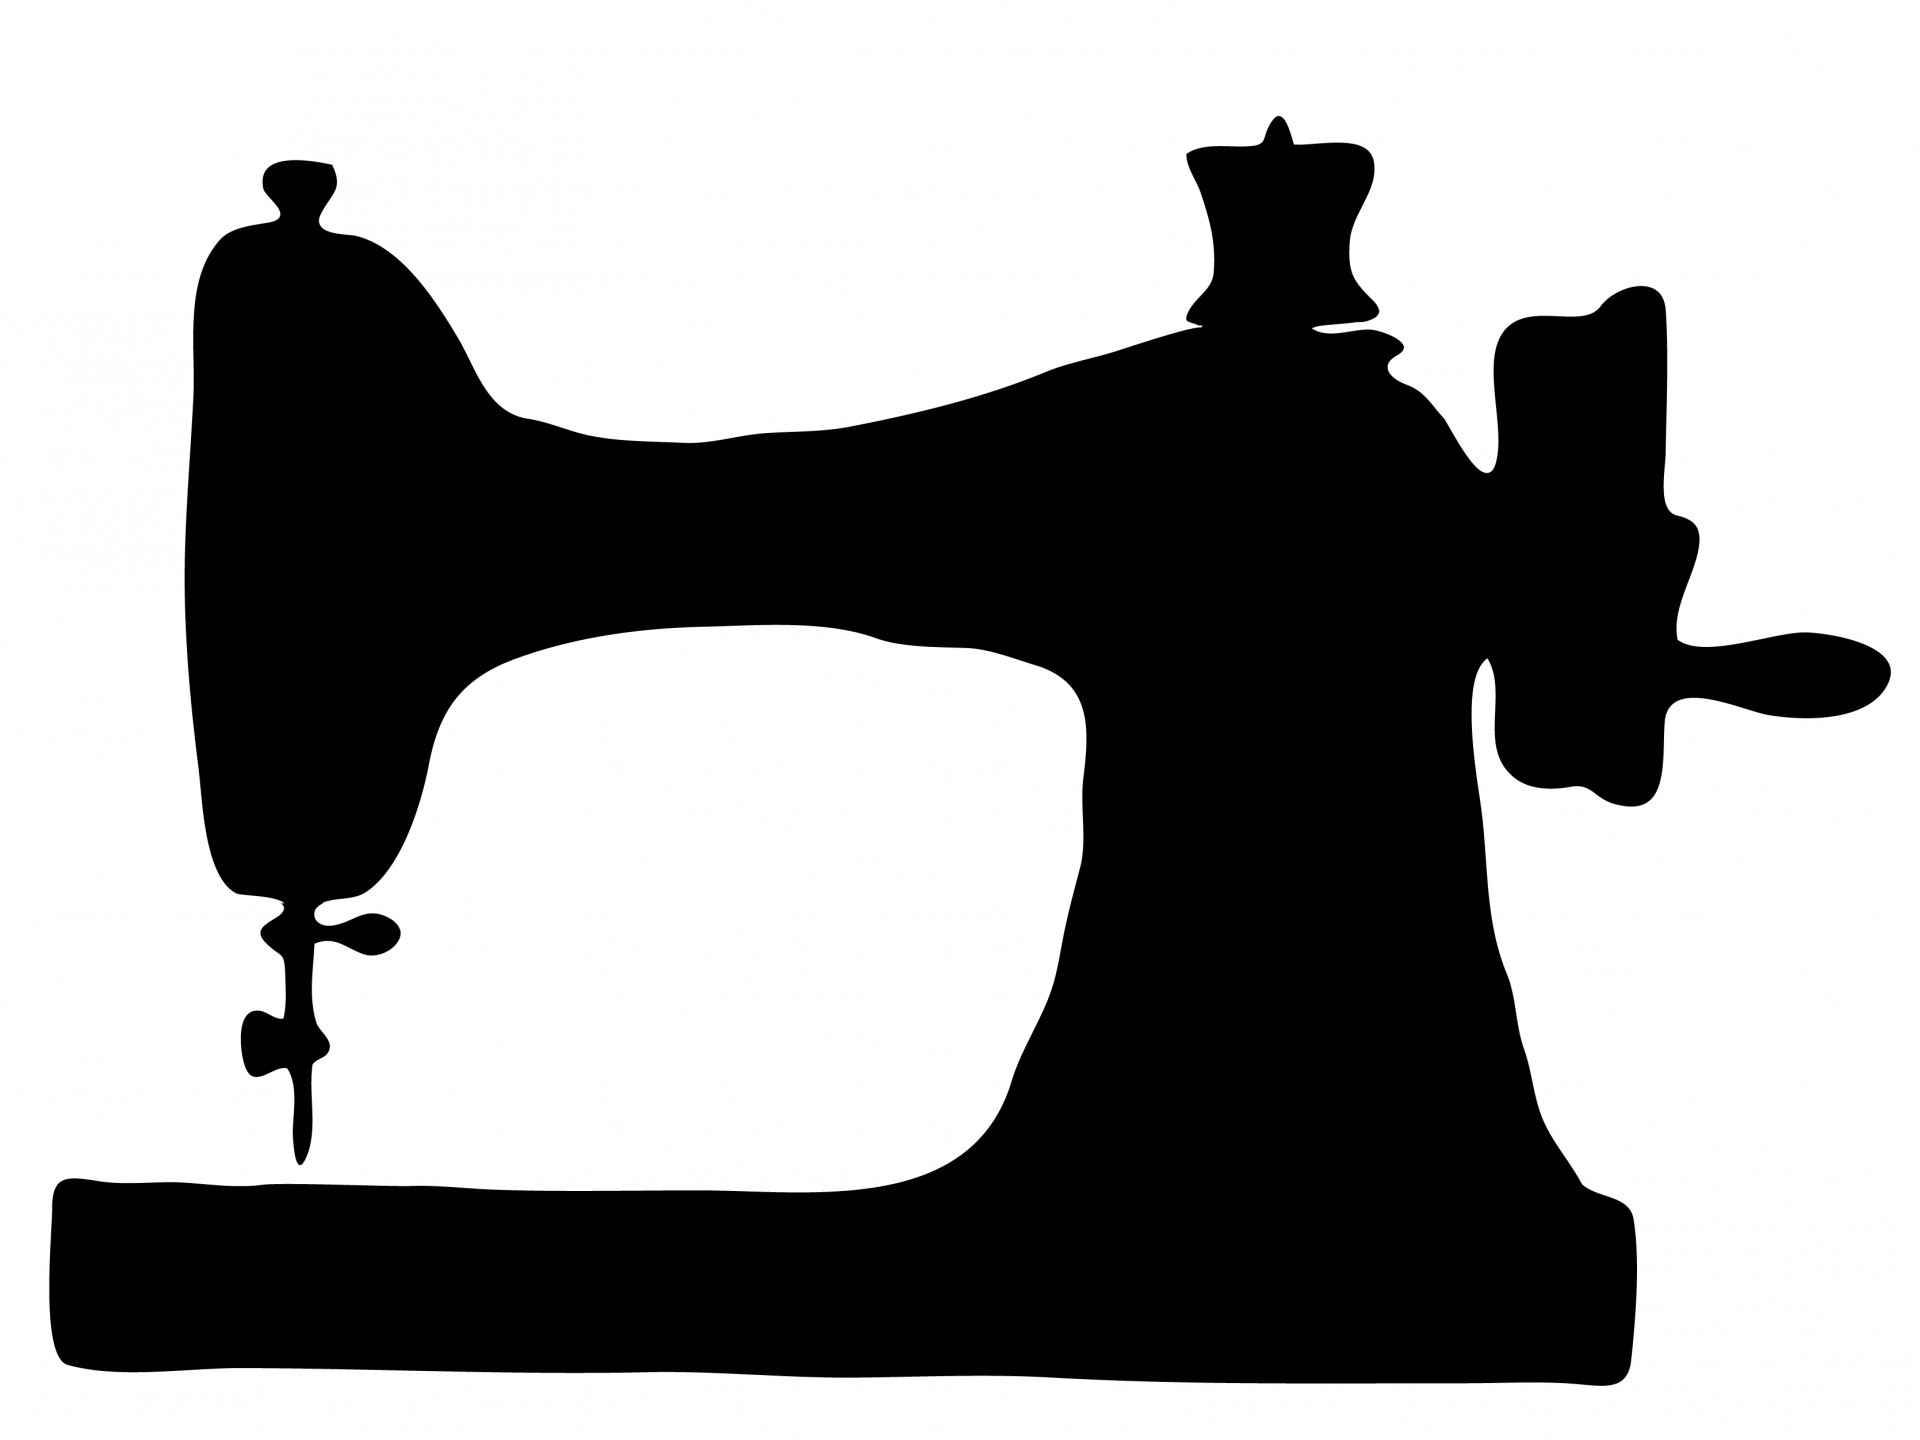 Vintage Sewing Machine Clipart Free Stock Photo.